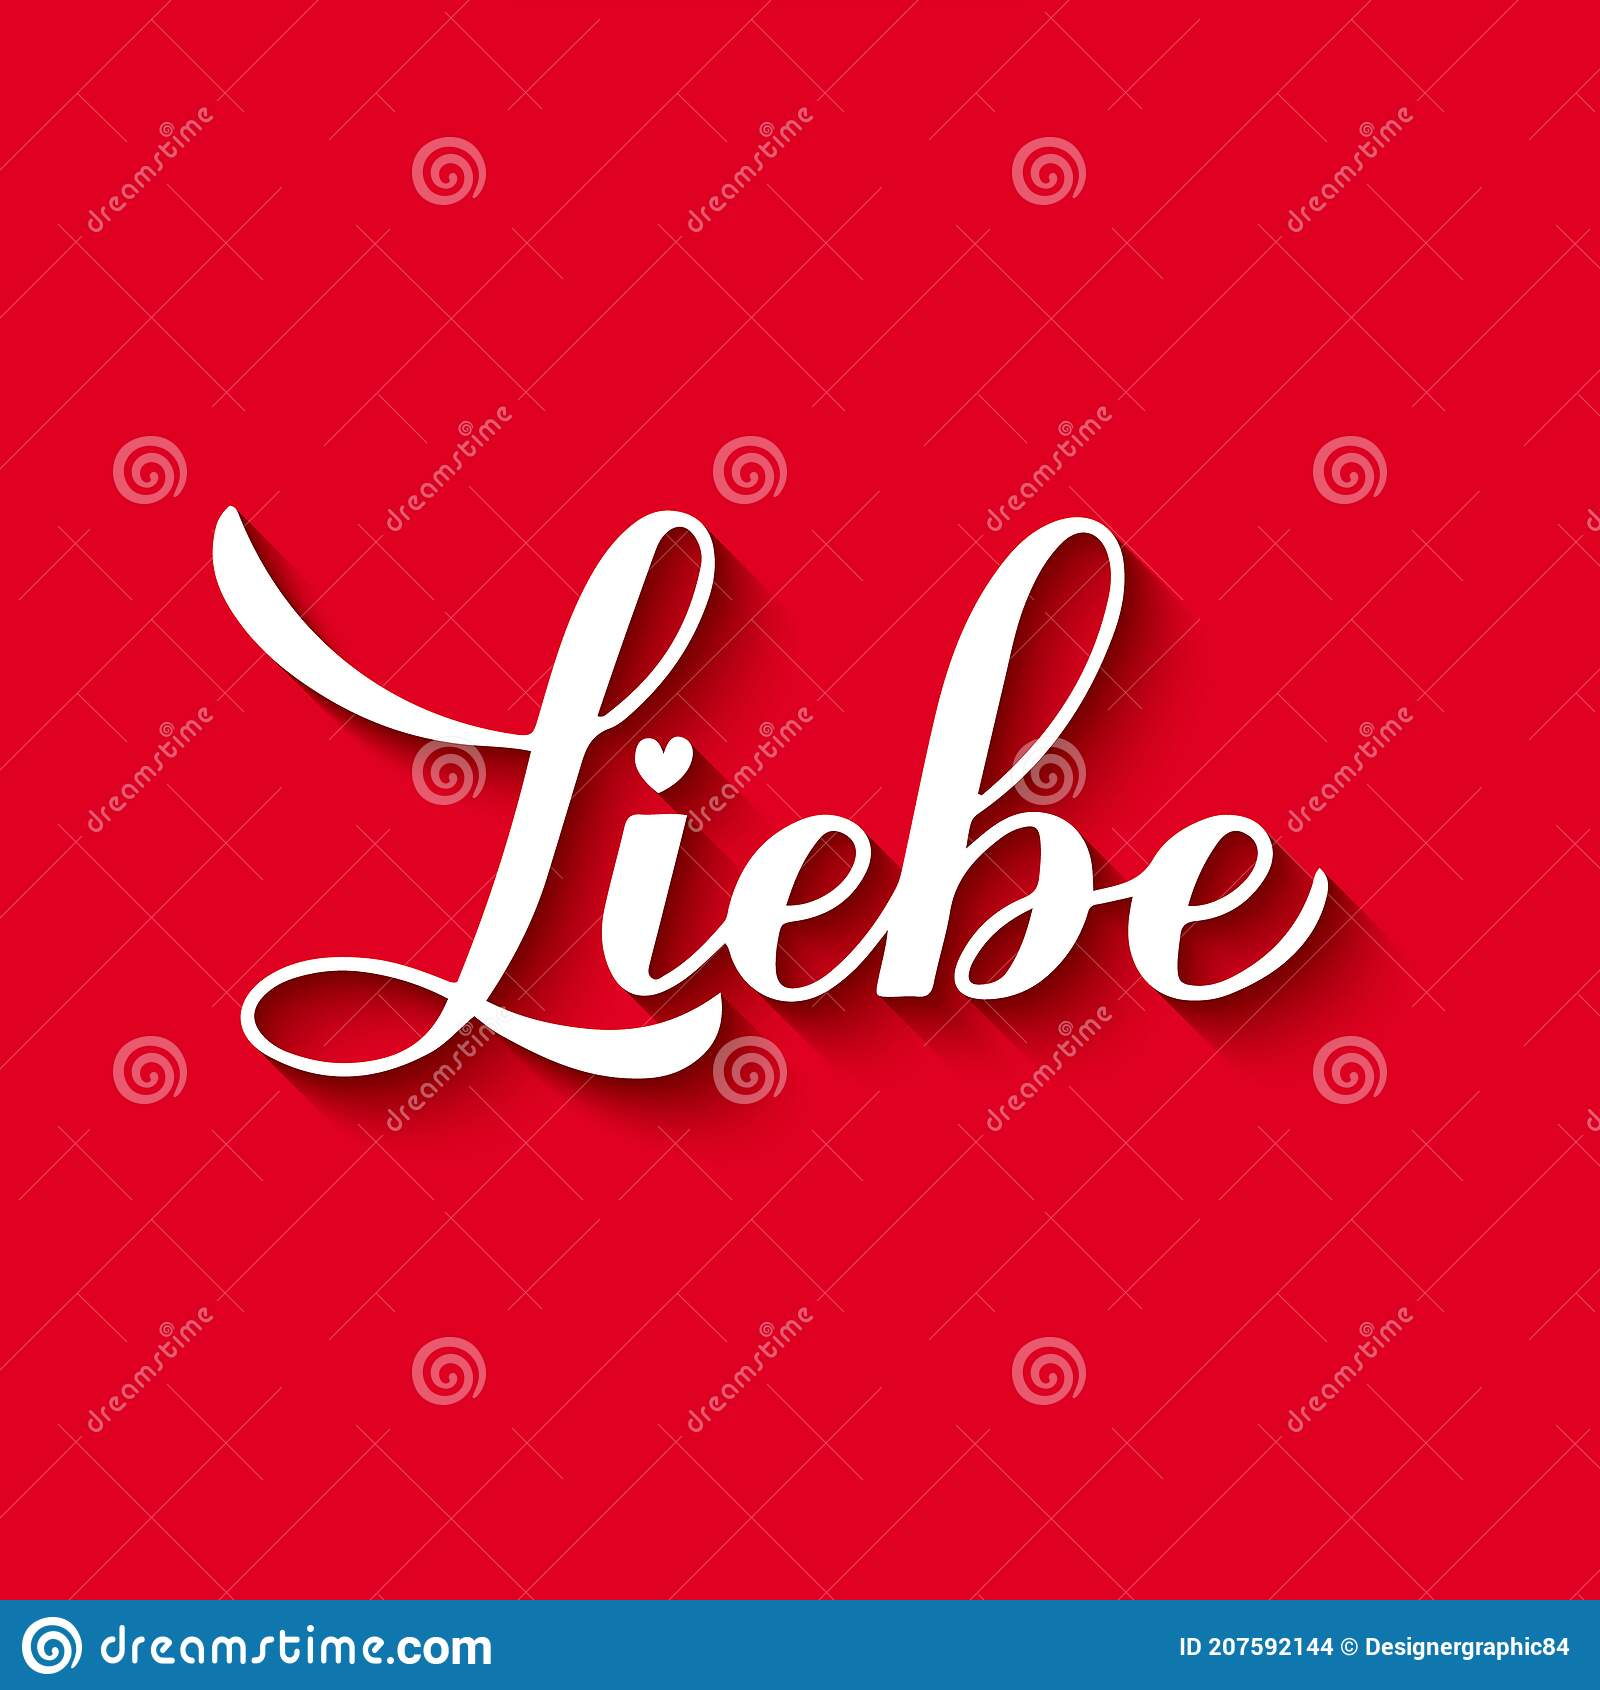 Liebe Calligraphy Hand Lettering On Red Background Love Inscription In German Valentines Day Typography Poster Vector Template Stock Vector Illustration Of Poster Calligraphy 207592144